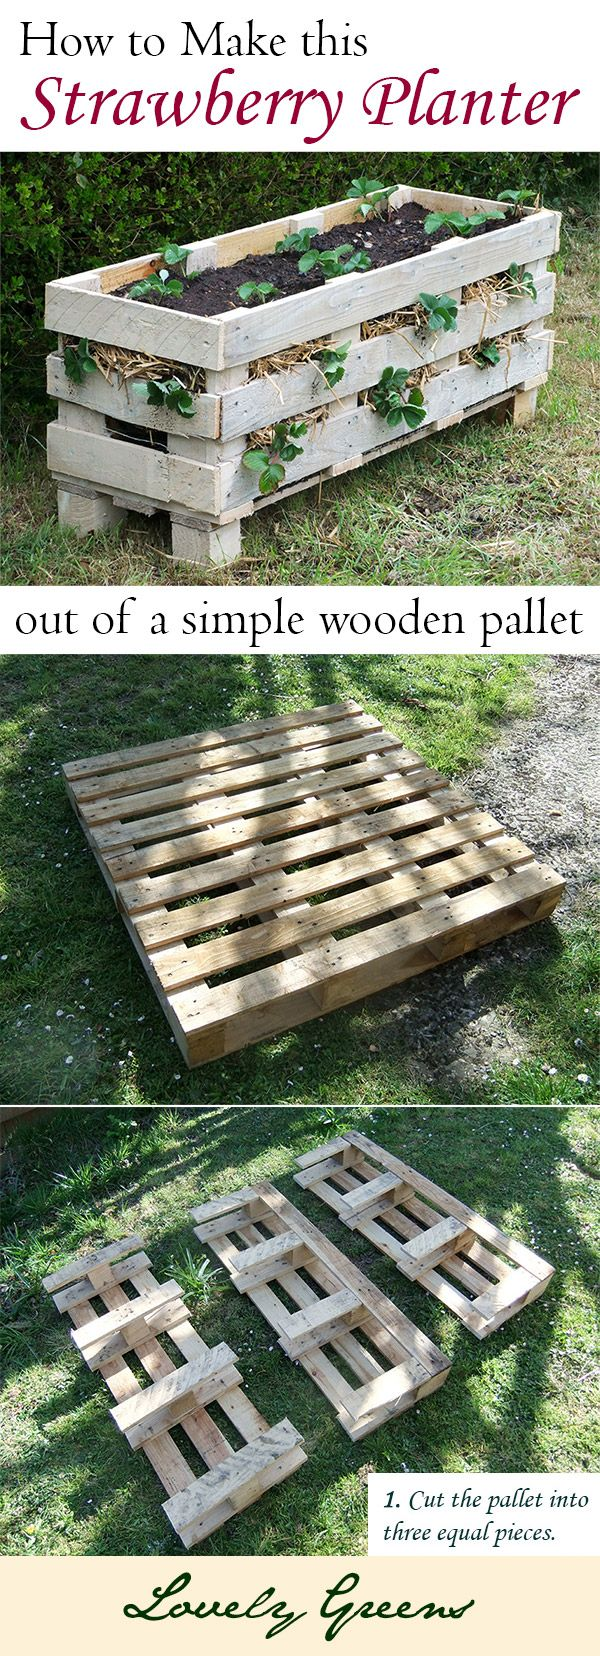 -- How to make this practical strawberry planter out of a single pallet, with some paint this would be really cute.